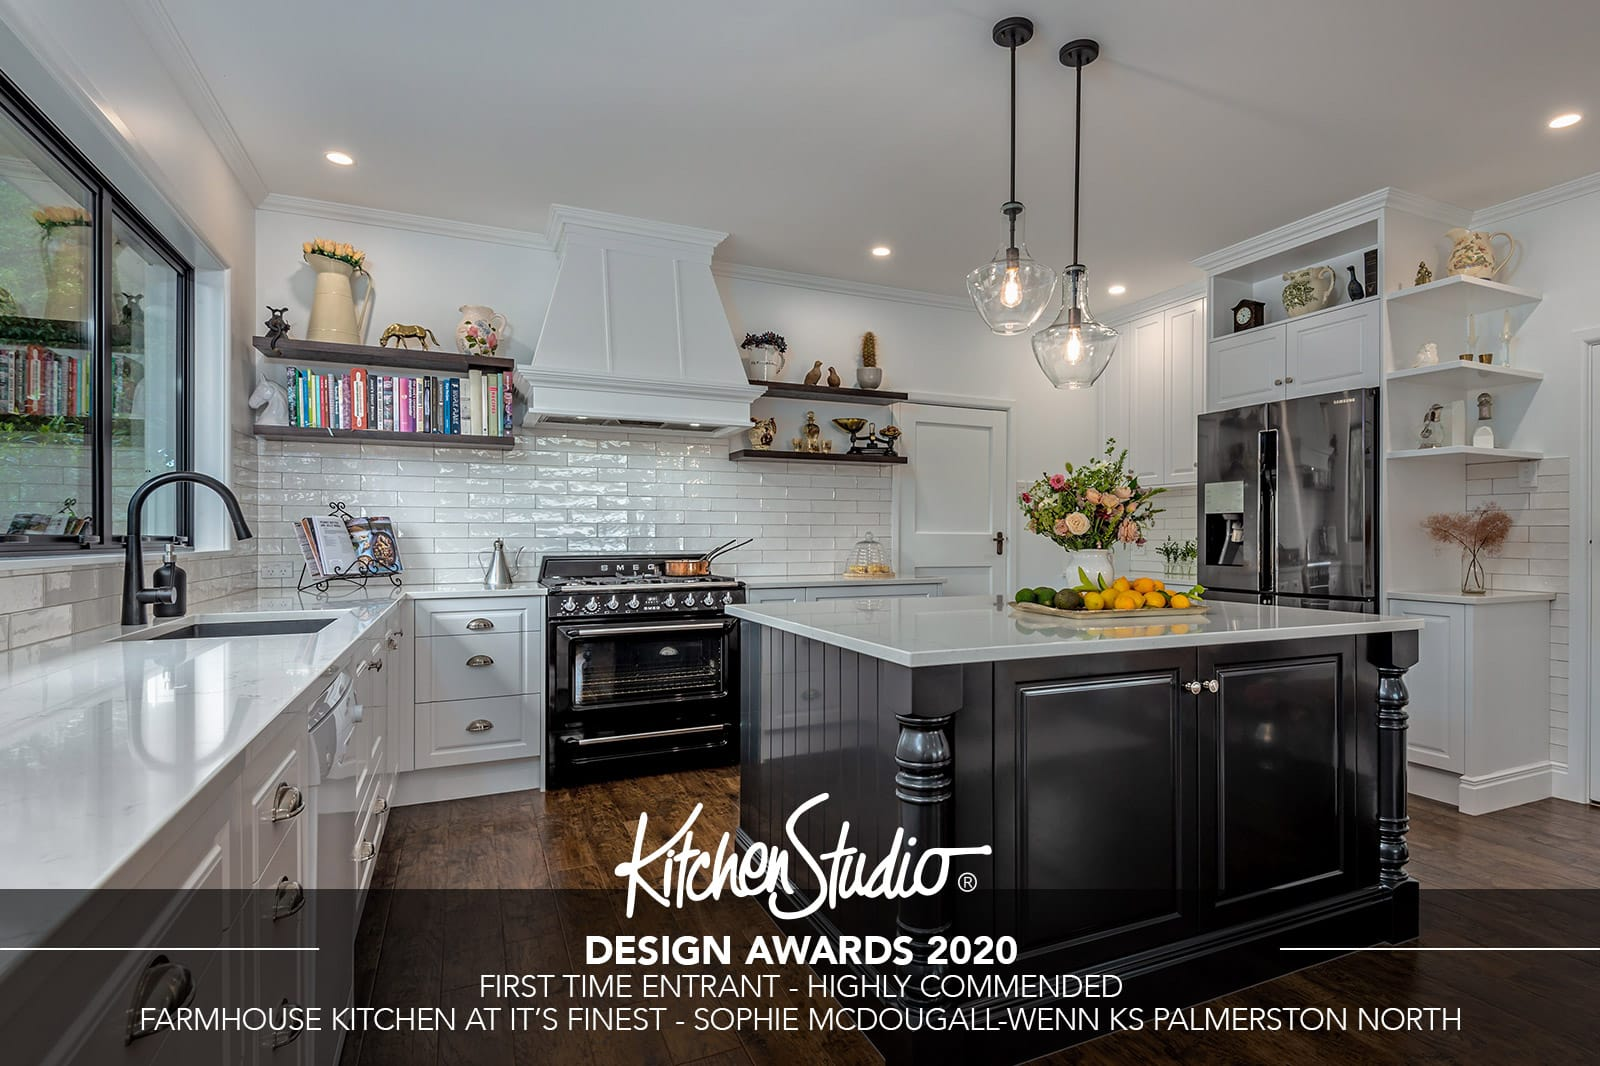 Kitchen Studio Palmerston North